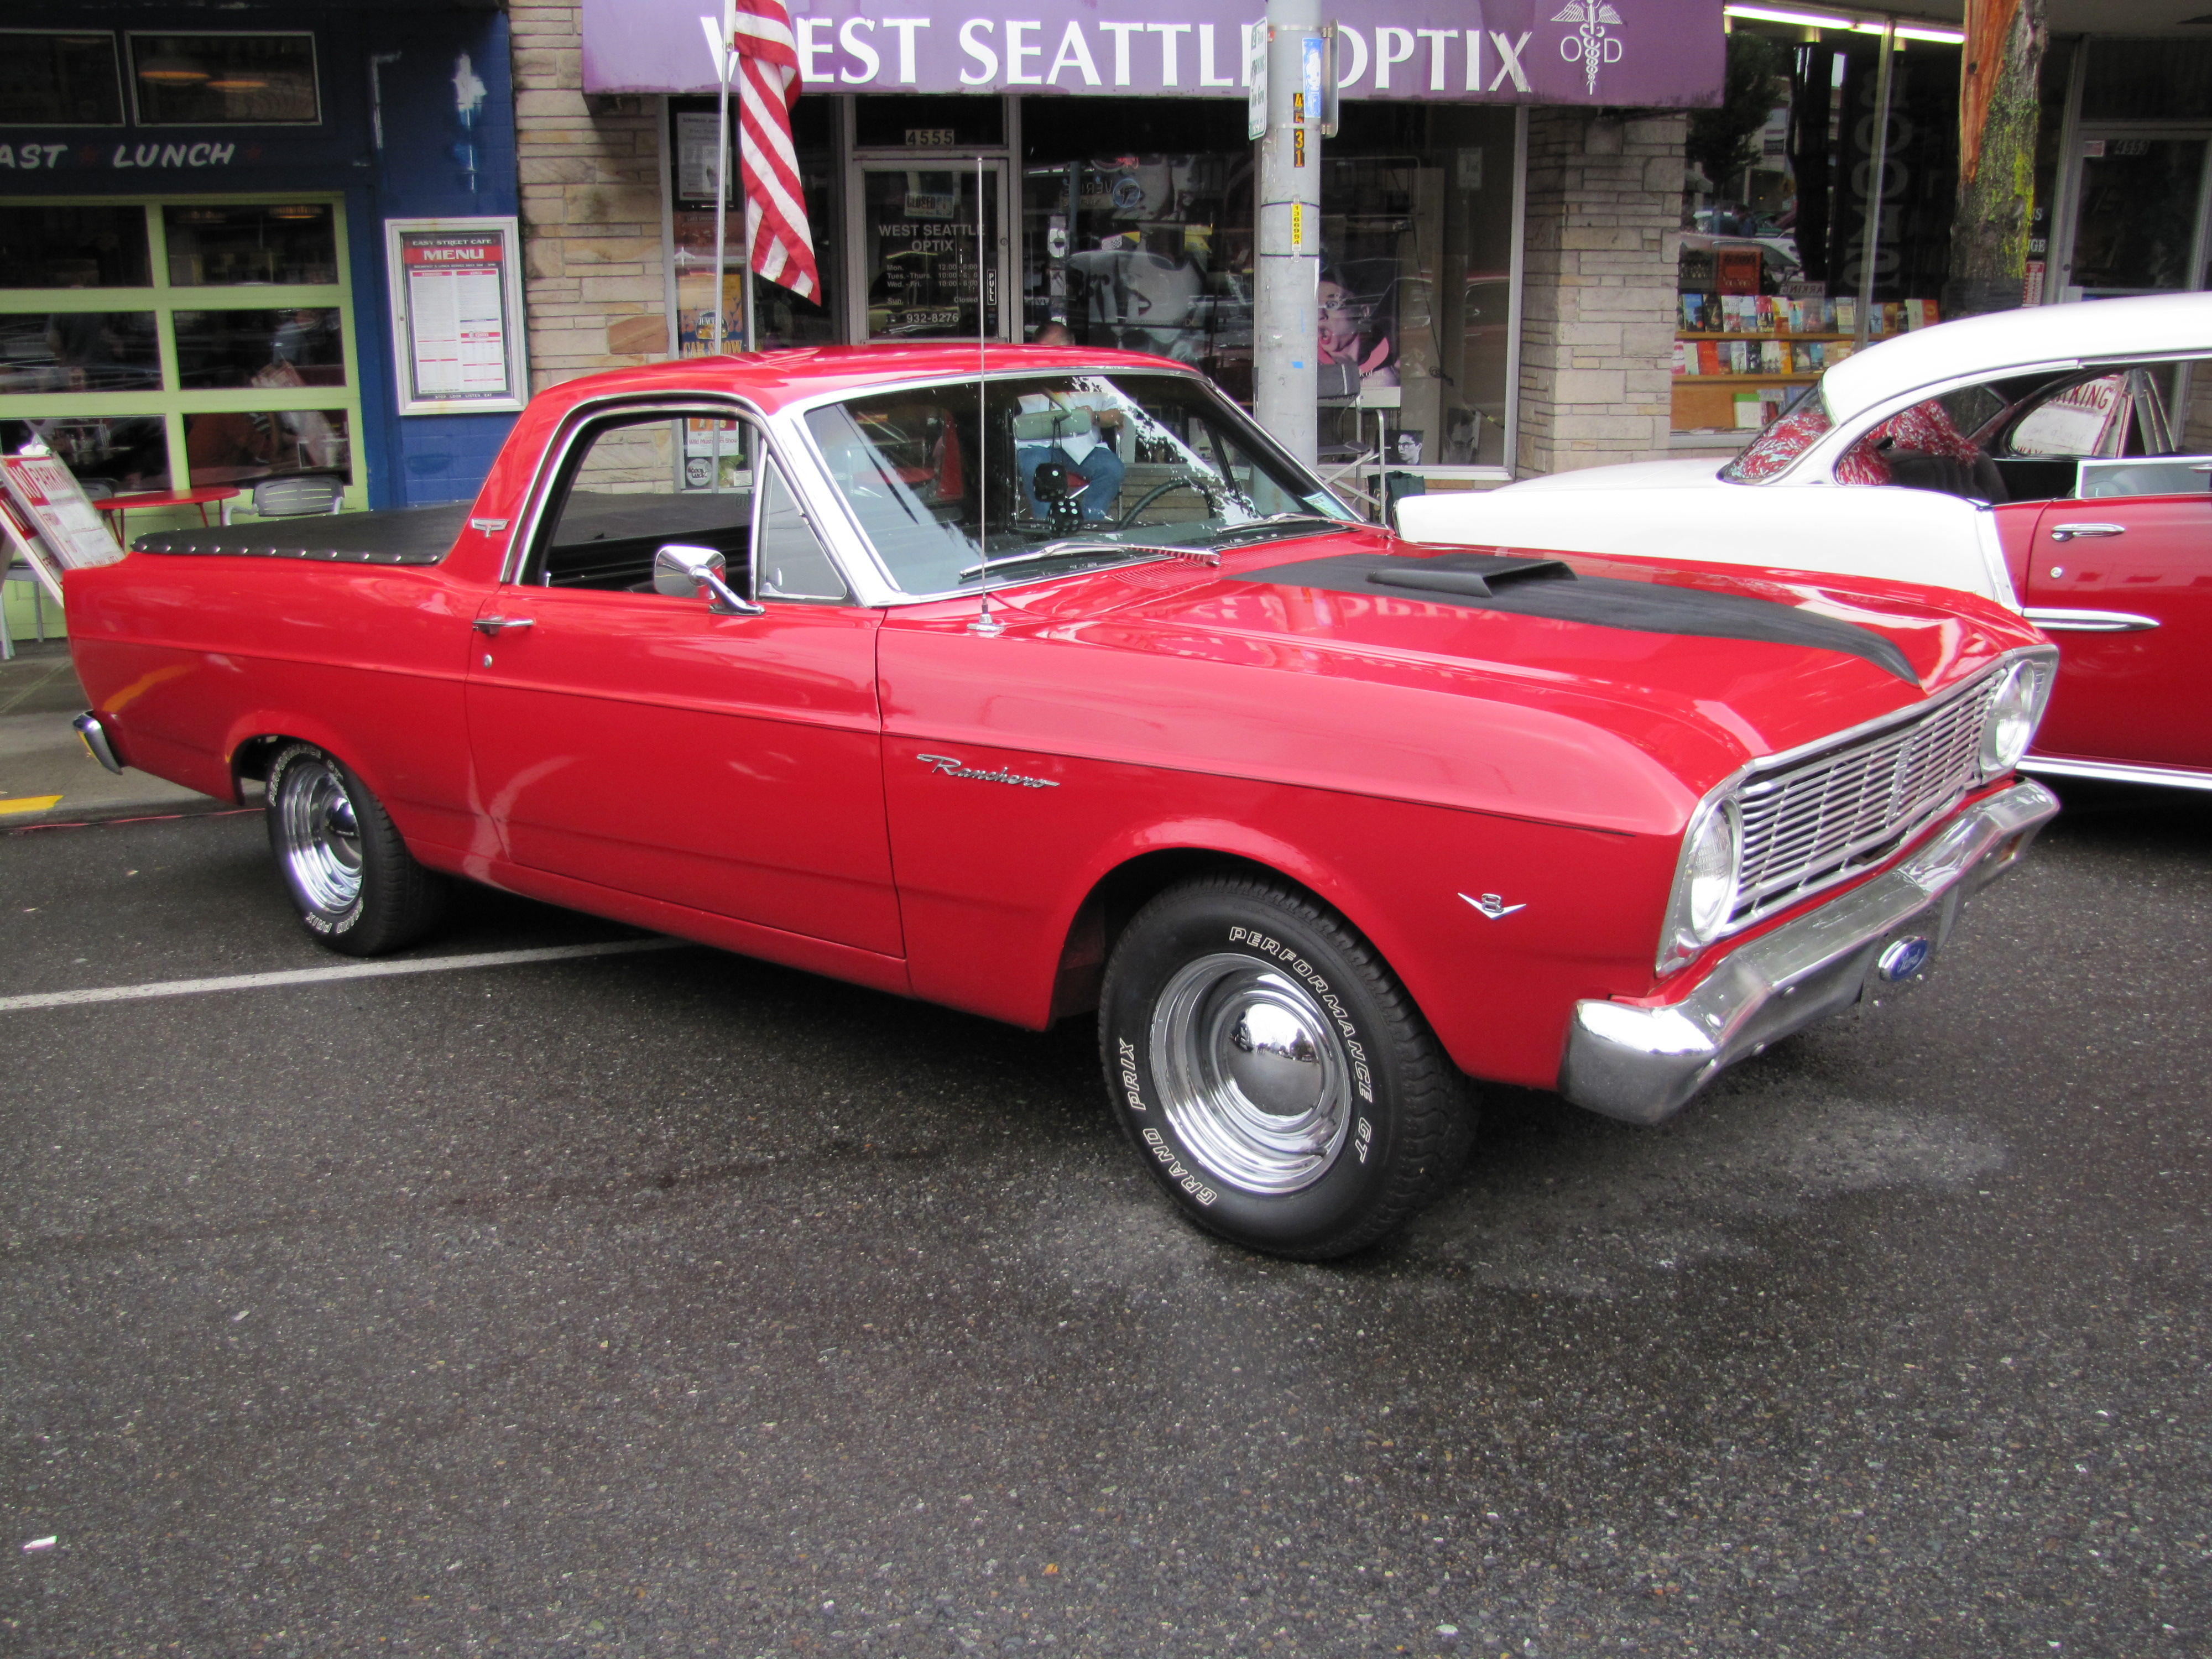 1966 falcon ranchero 1966 ford ranchero 1280 x 1080 1966 ford ranchero 1280 x 1080 source abuse report